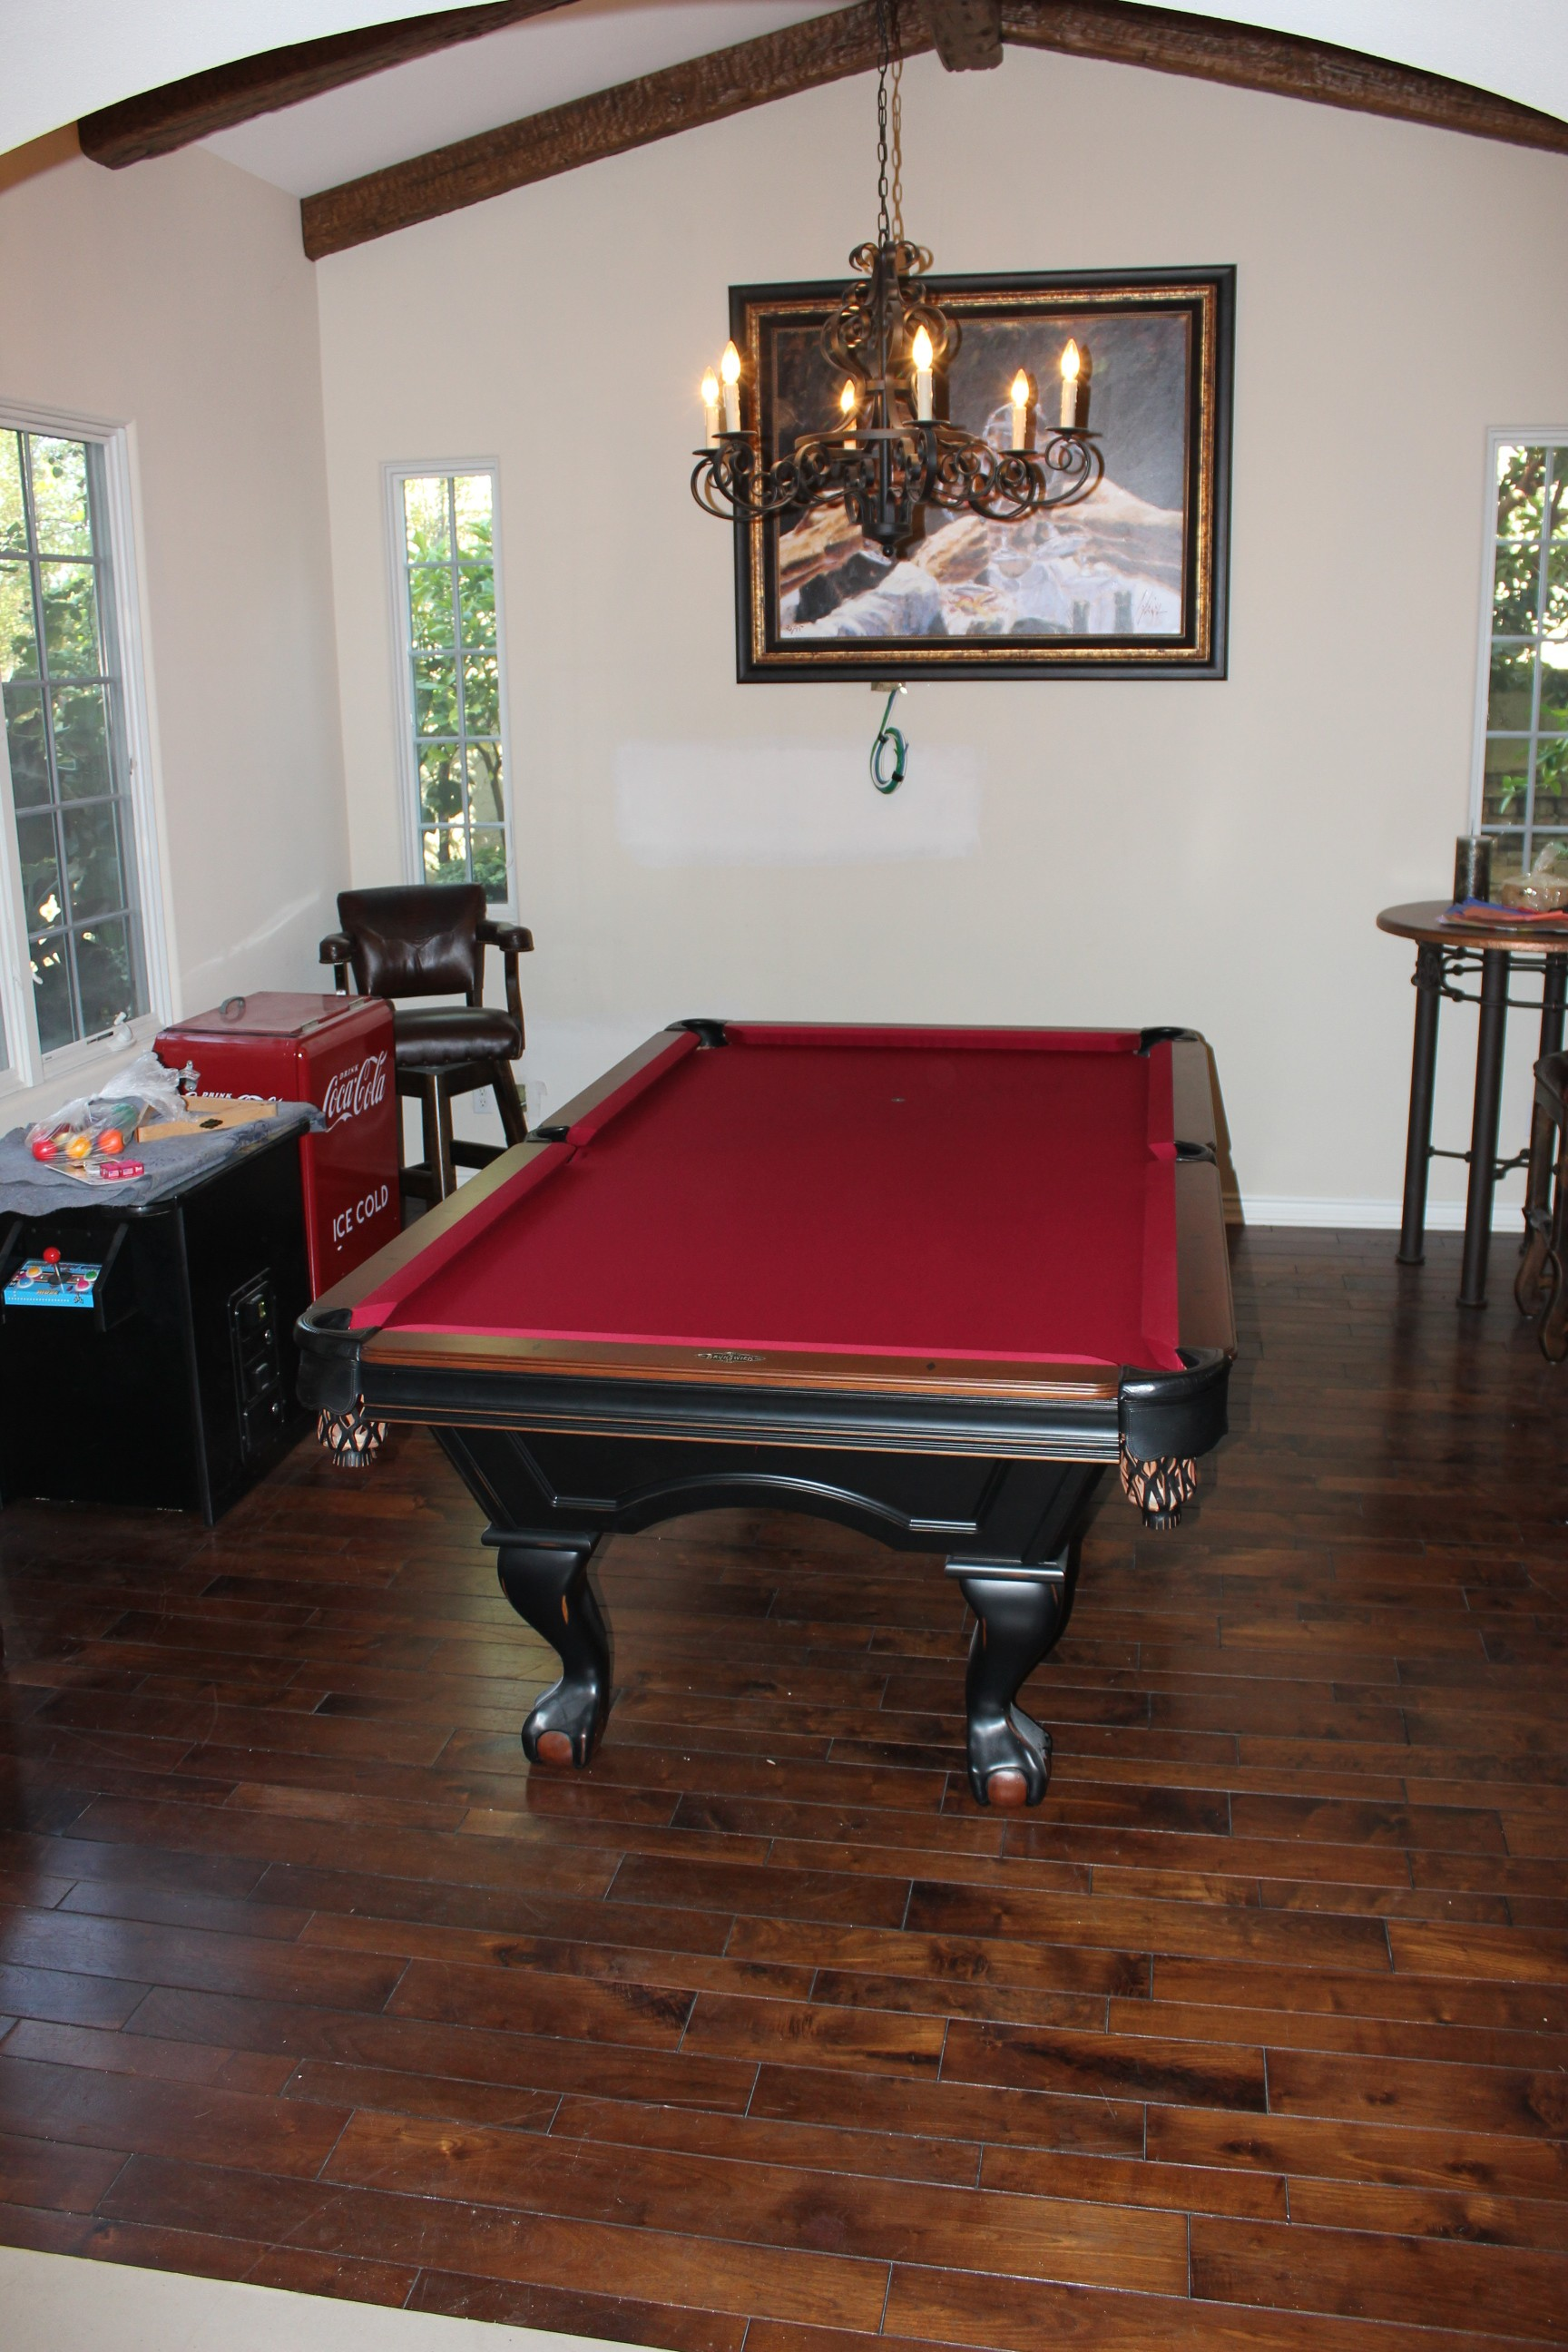 Are You Trying To Figure Out What Size Pool Table You Have? Or, Are You  Looking To Buy A Pool Table And Arenu0027t Sure What Size Will Work For You?